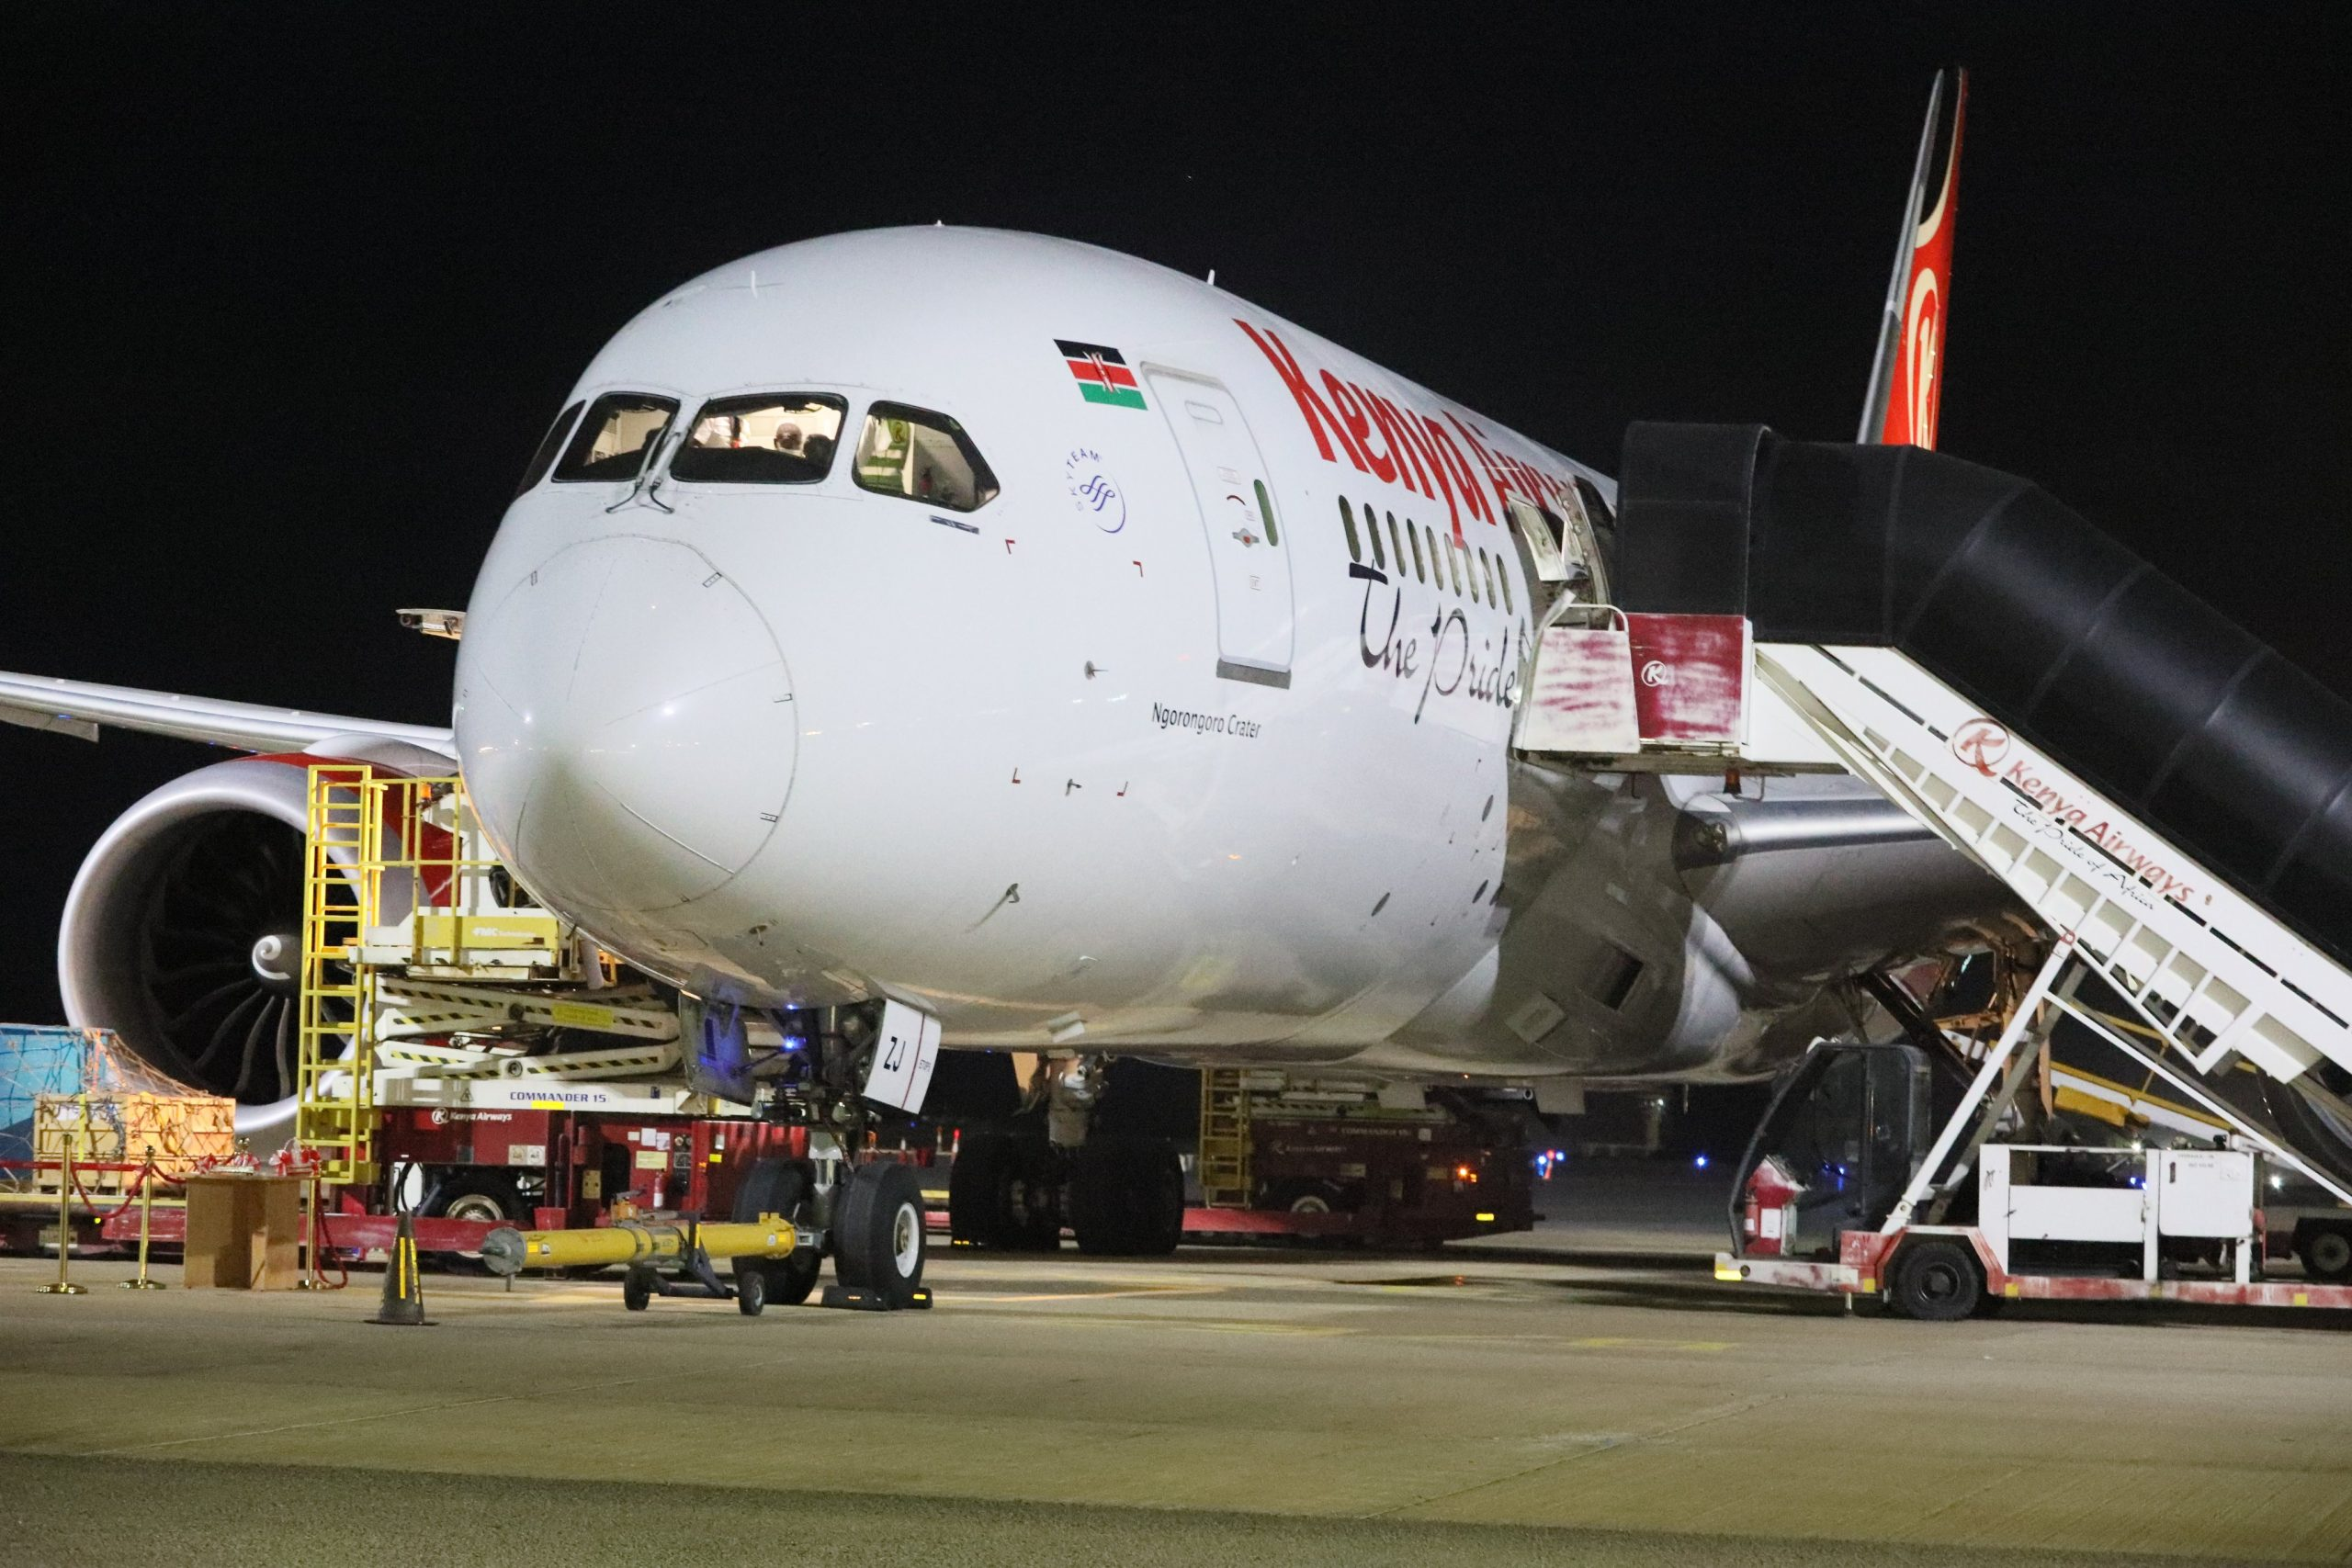 A Kenya Airways plane at Mombasa International Airport before starting a direct cargo flight to Shajara Airport, UAE on November 25, 2020